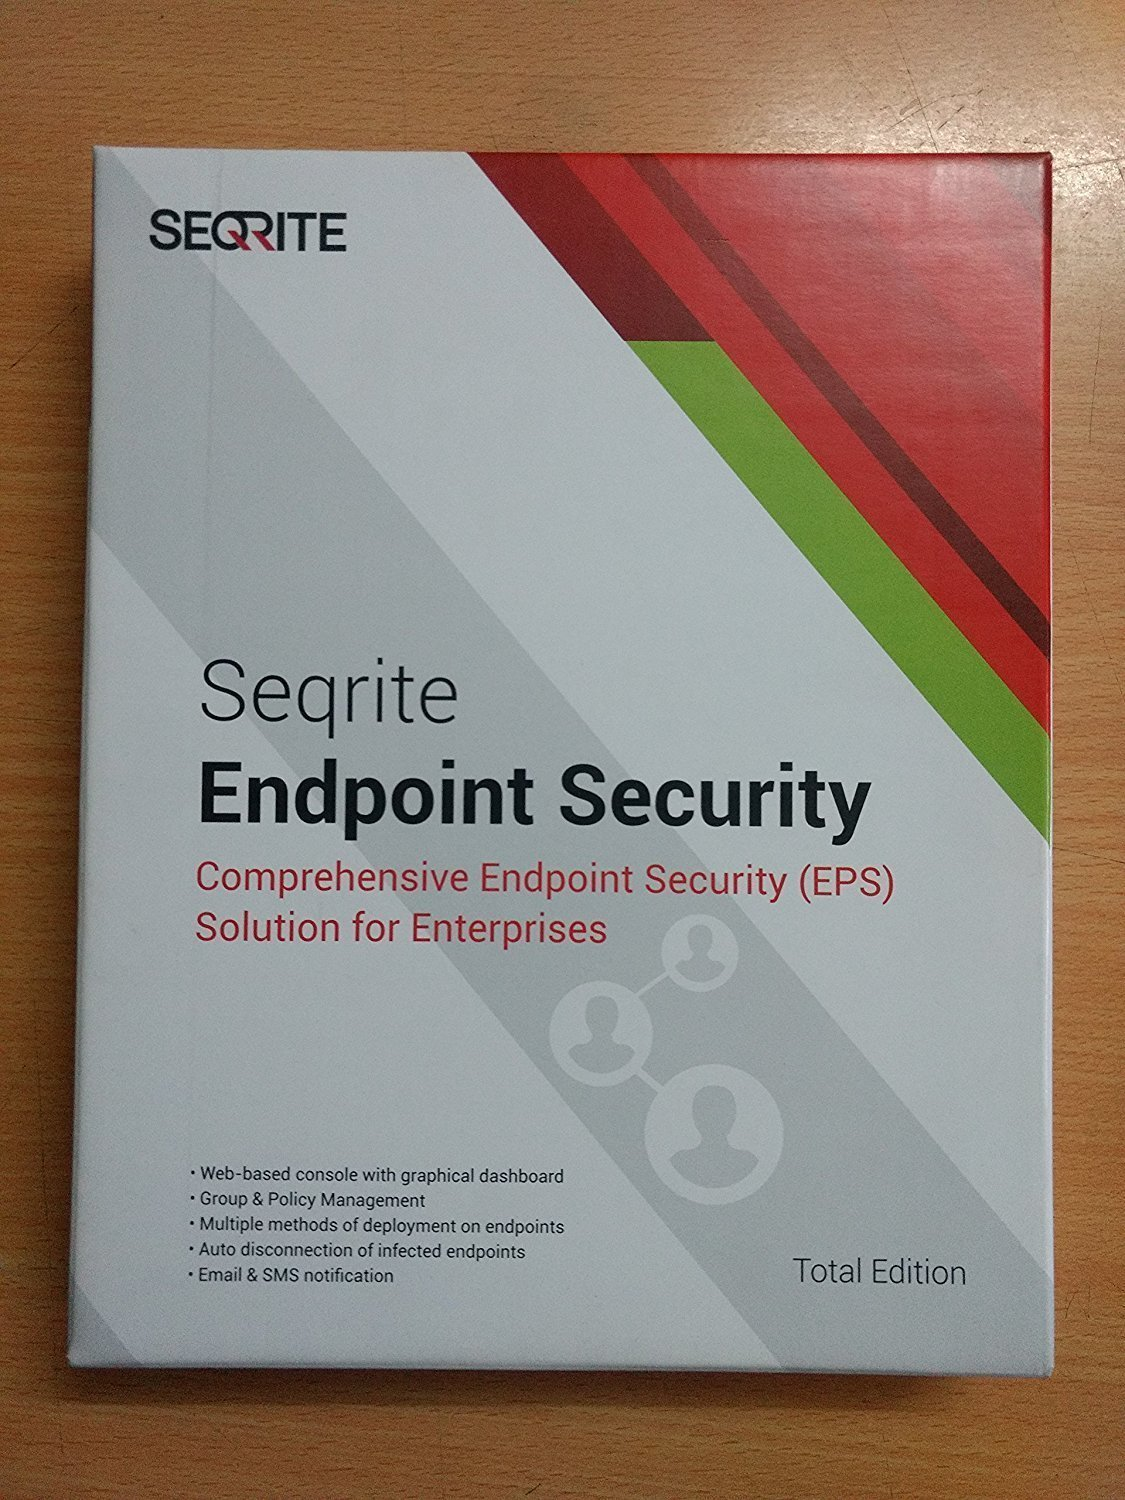 5 User, 3 Year, Seqrite Endpoint, Total Edition